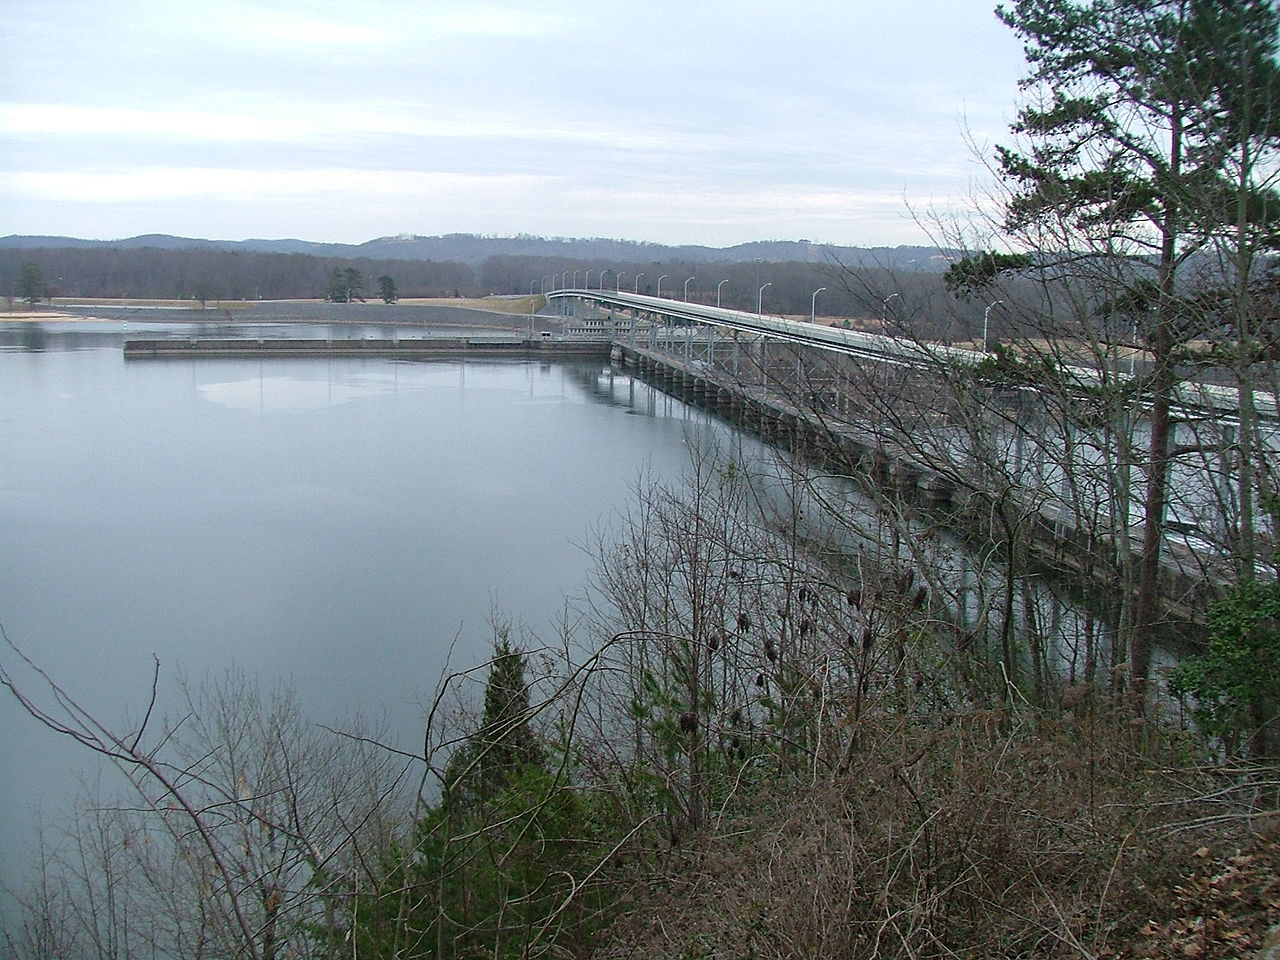 photo: Watts Bar Dam. Photo by ChristopherM.